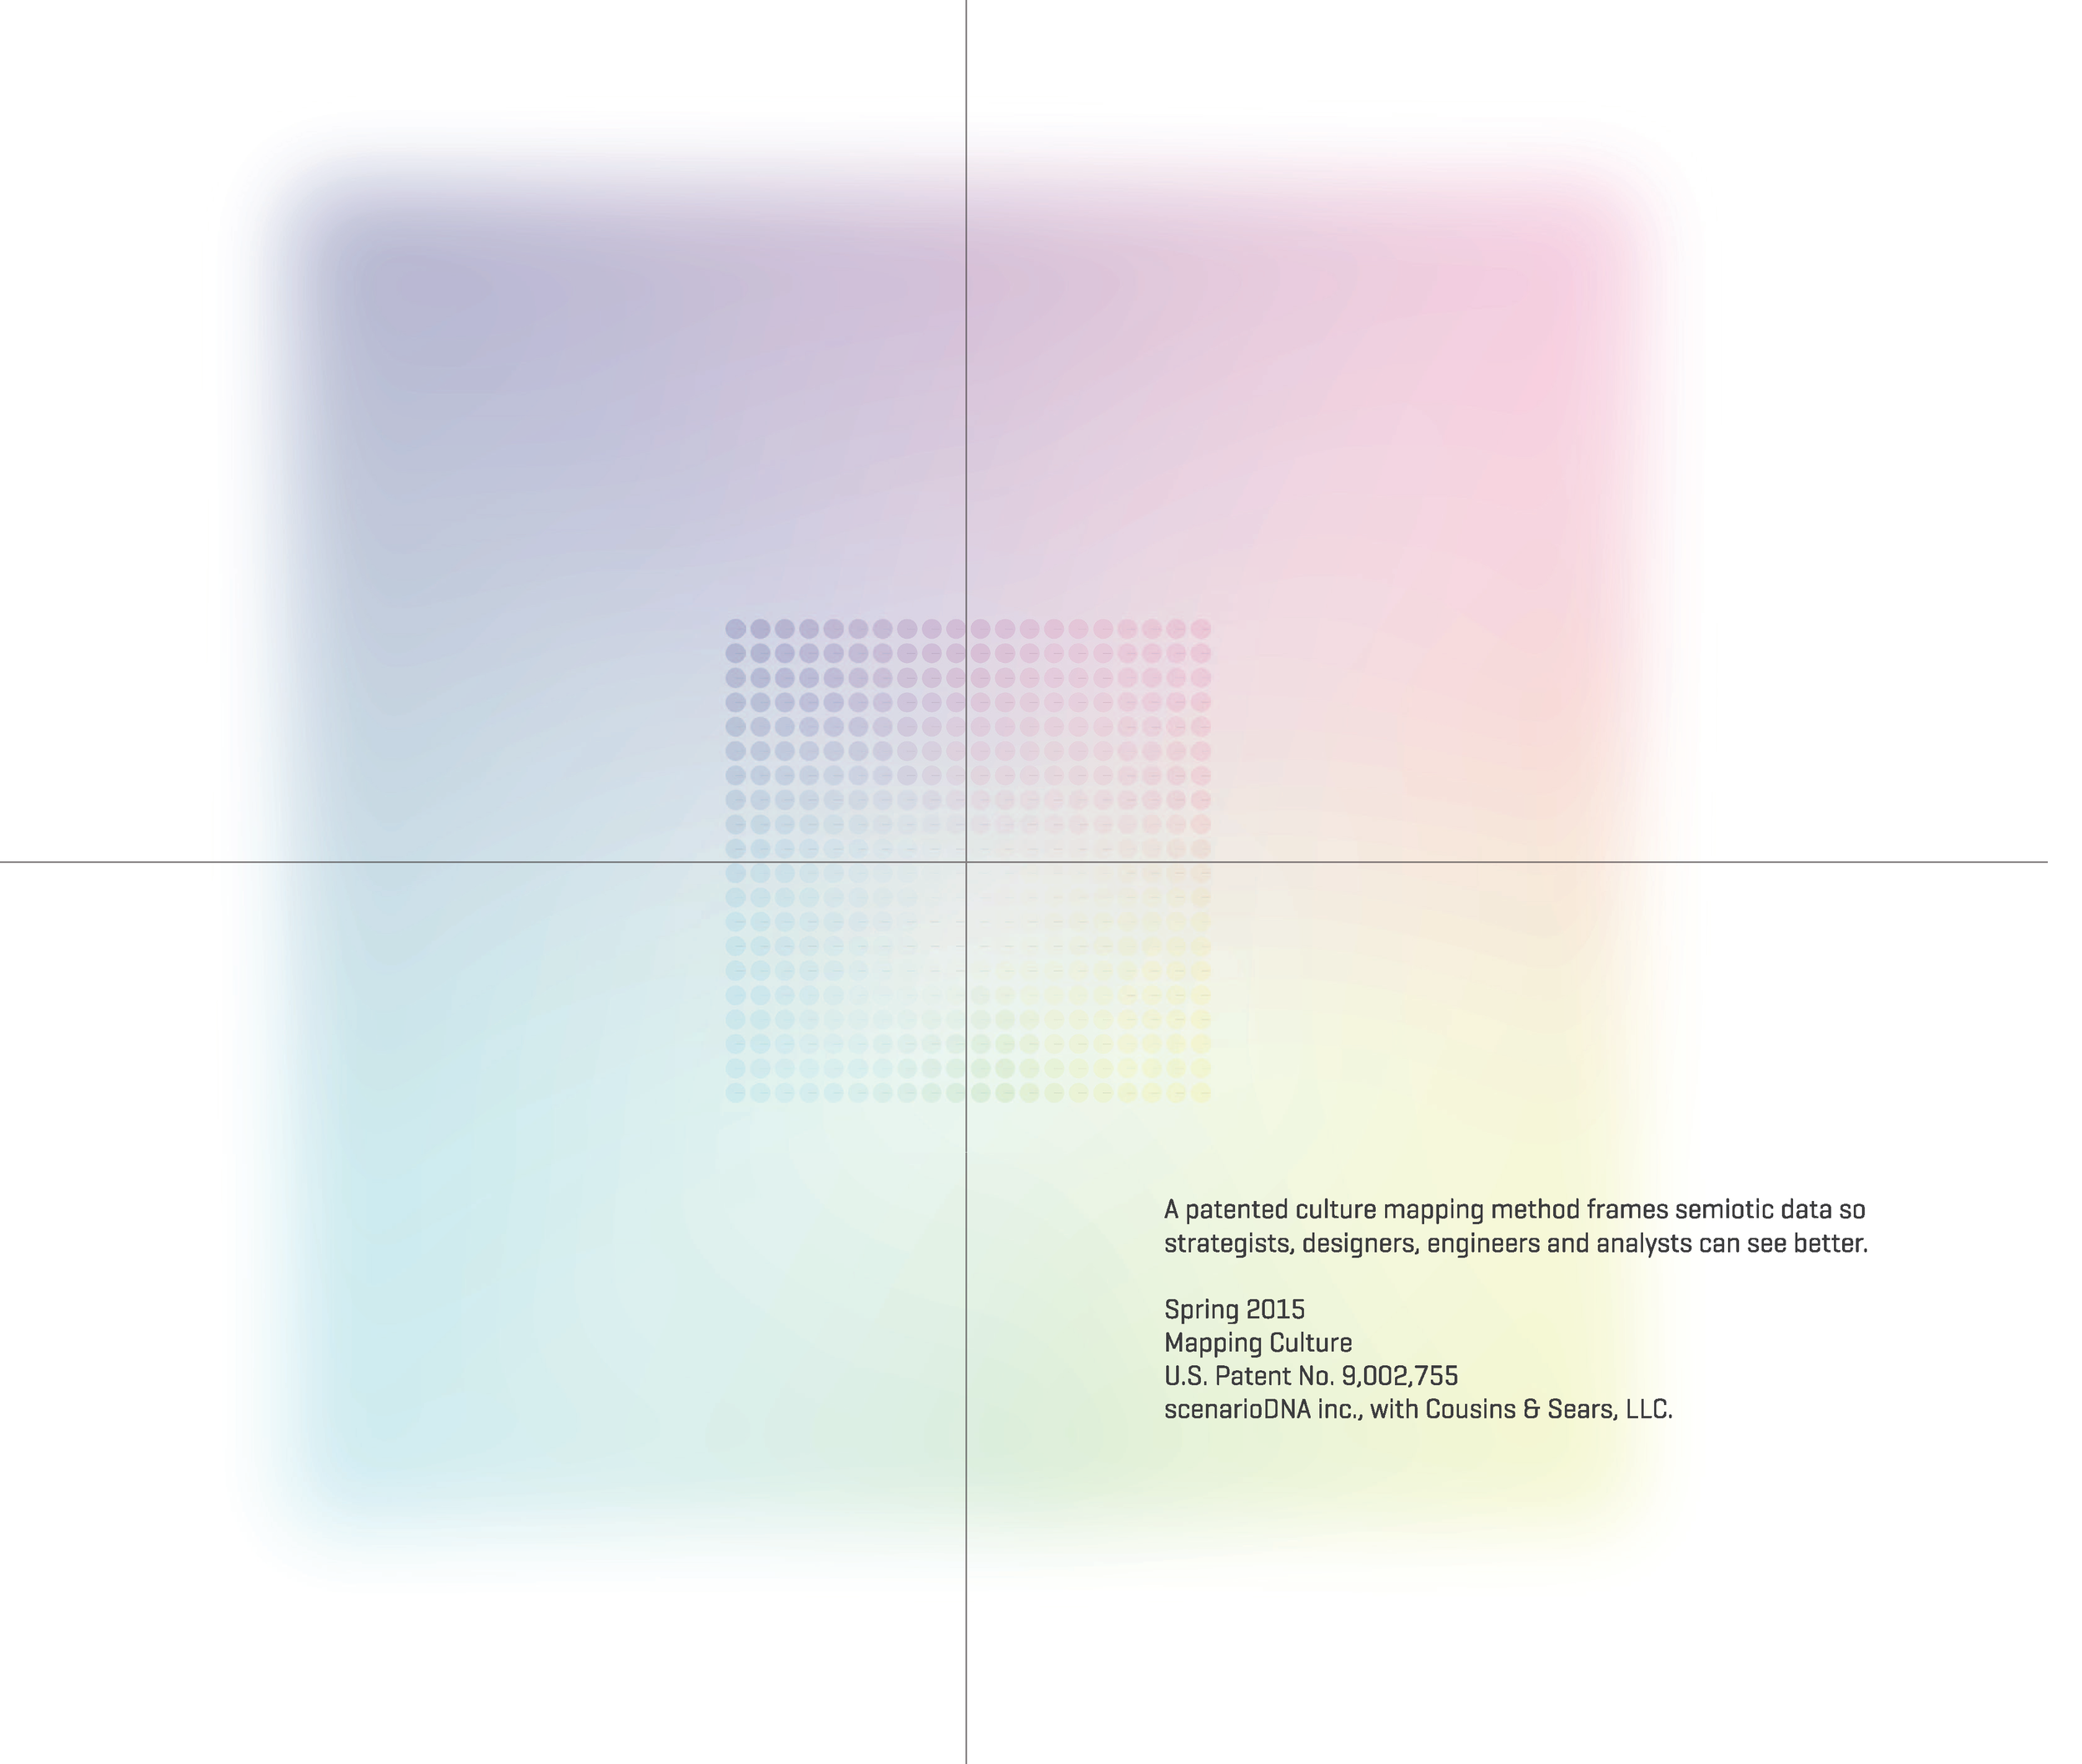 MappingCulture_BOOK_Page_42.png